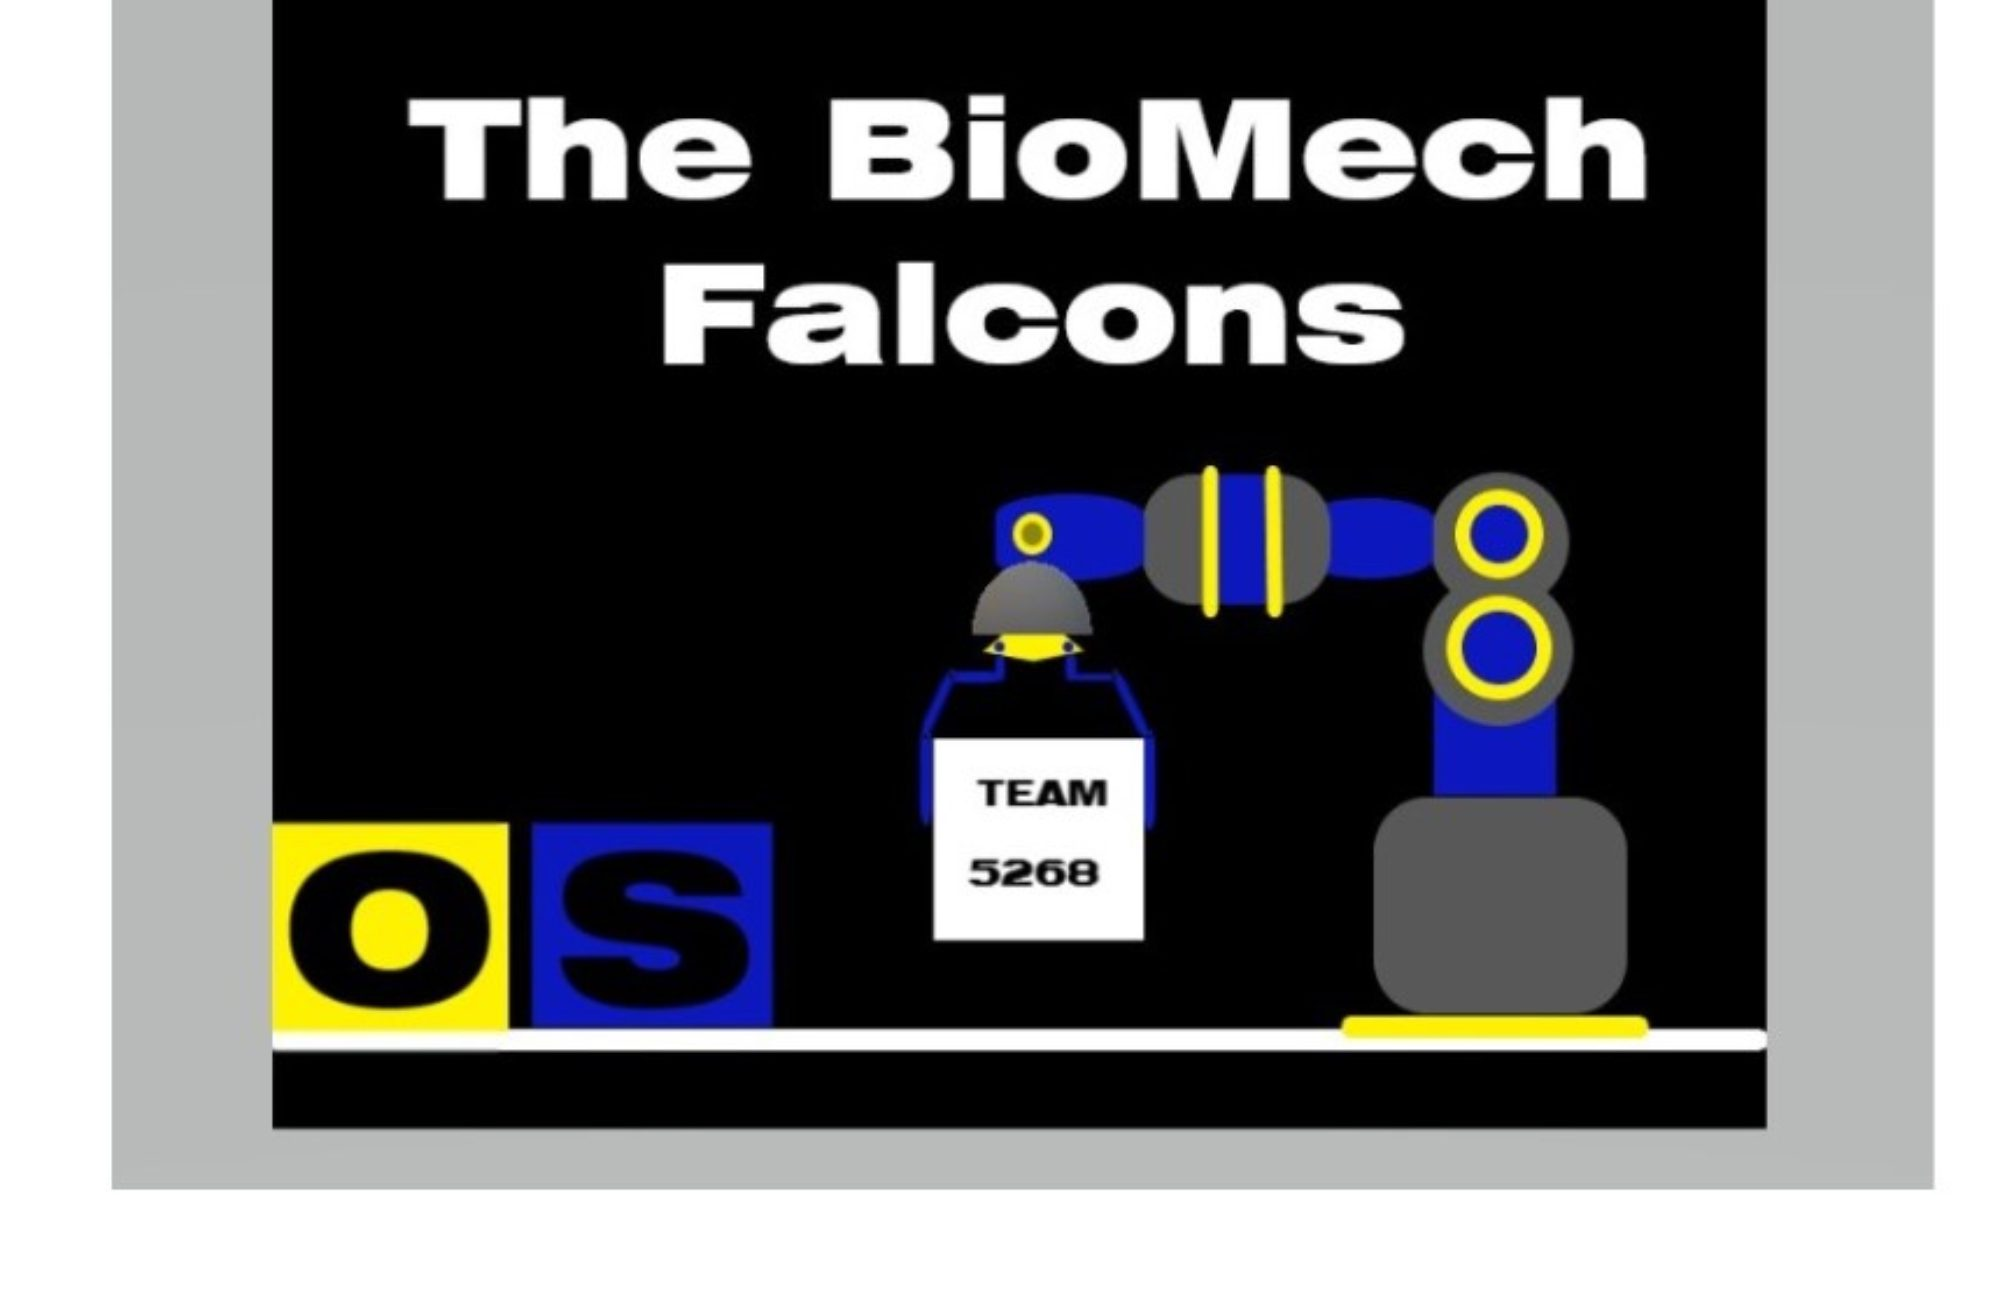 BioMech Falcons